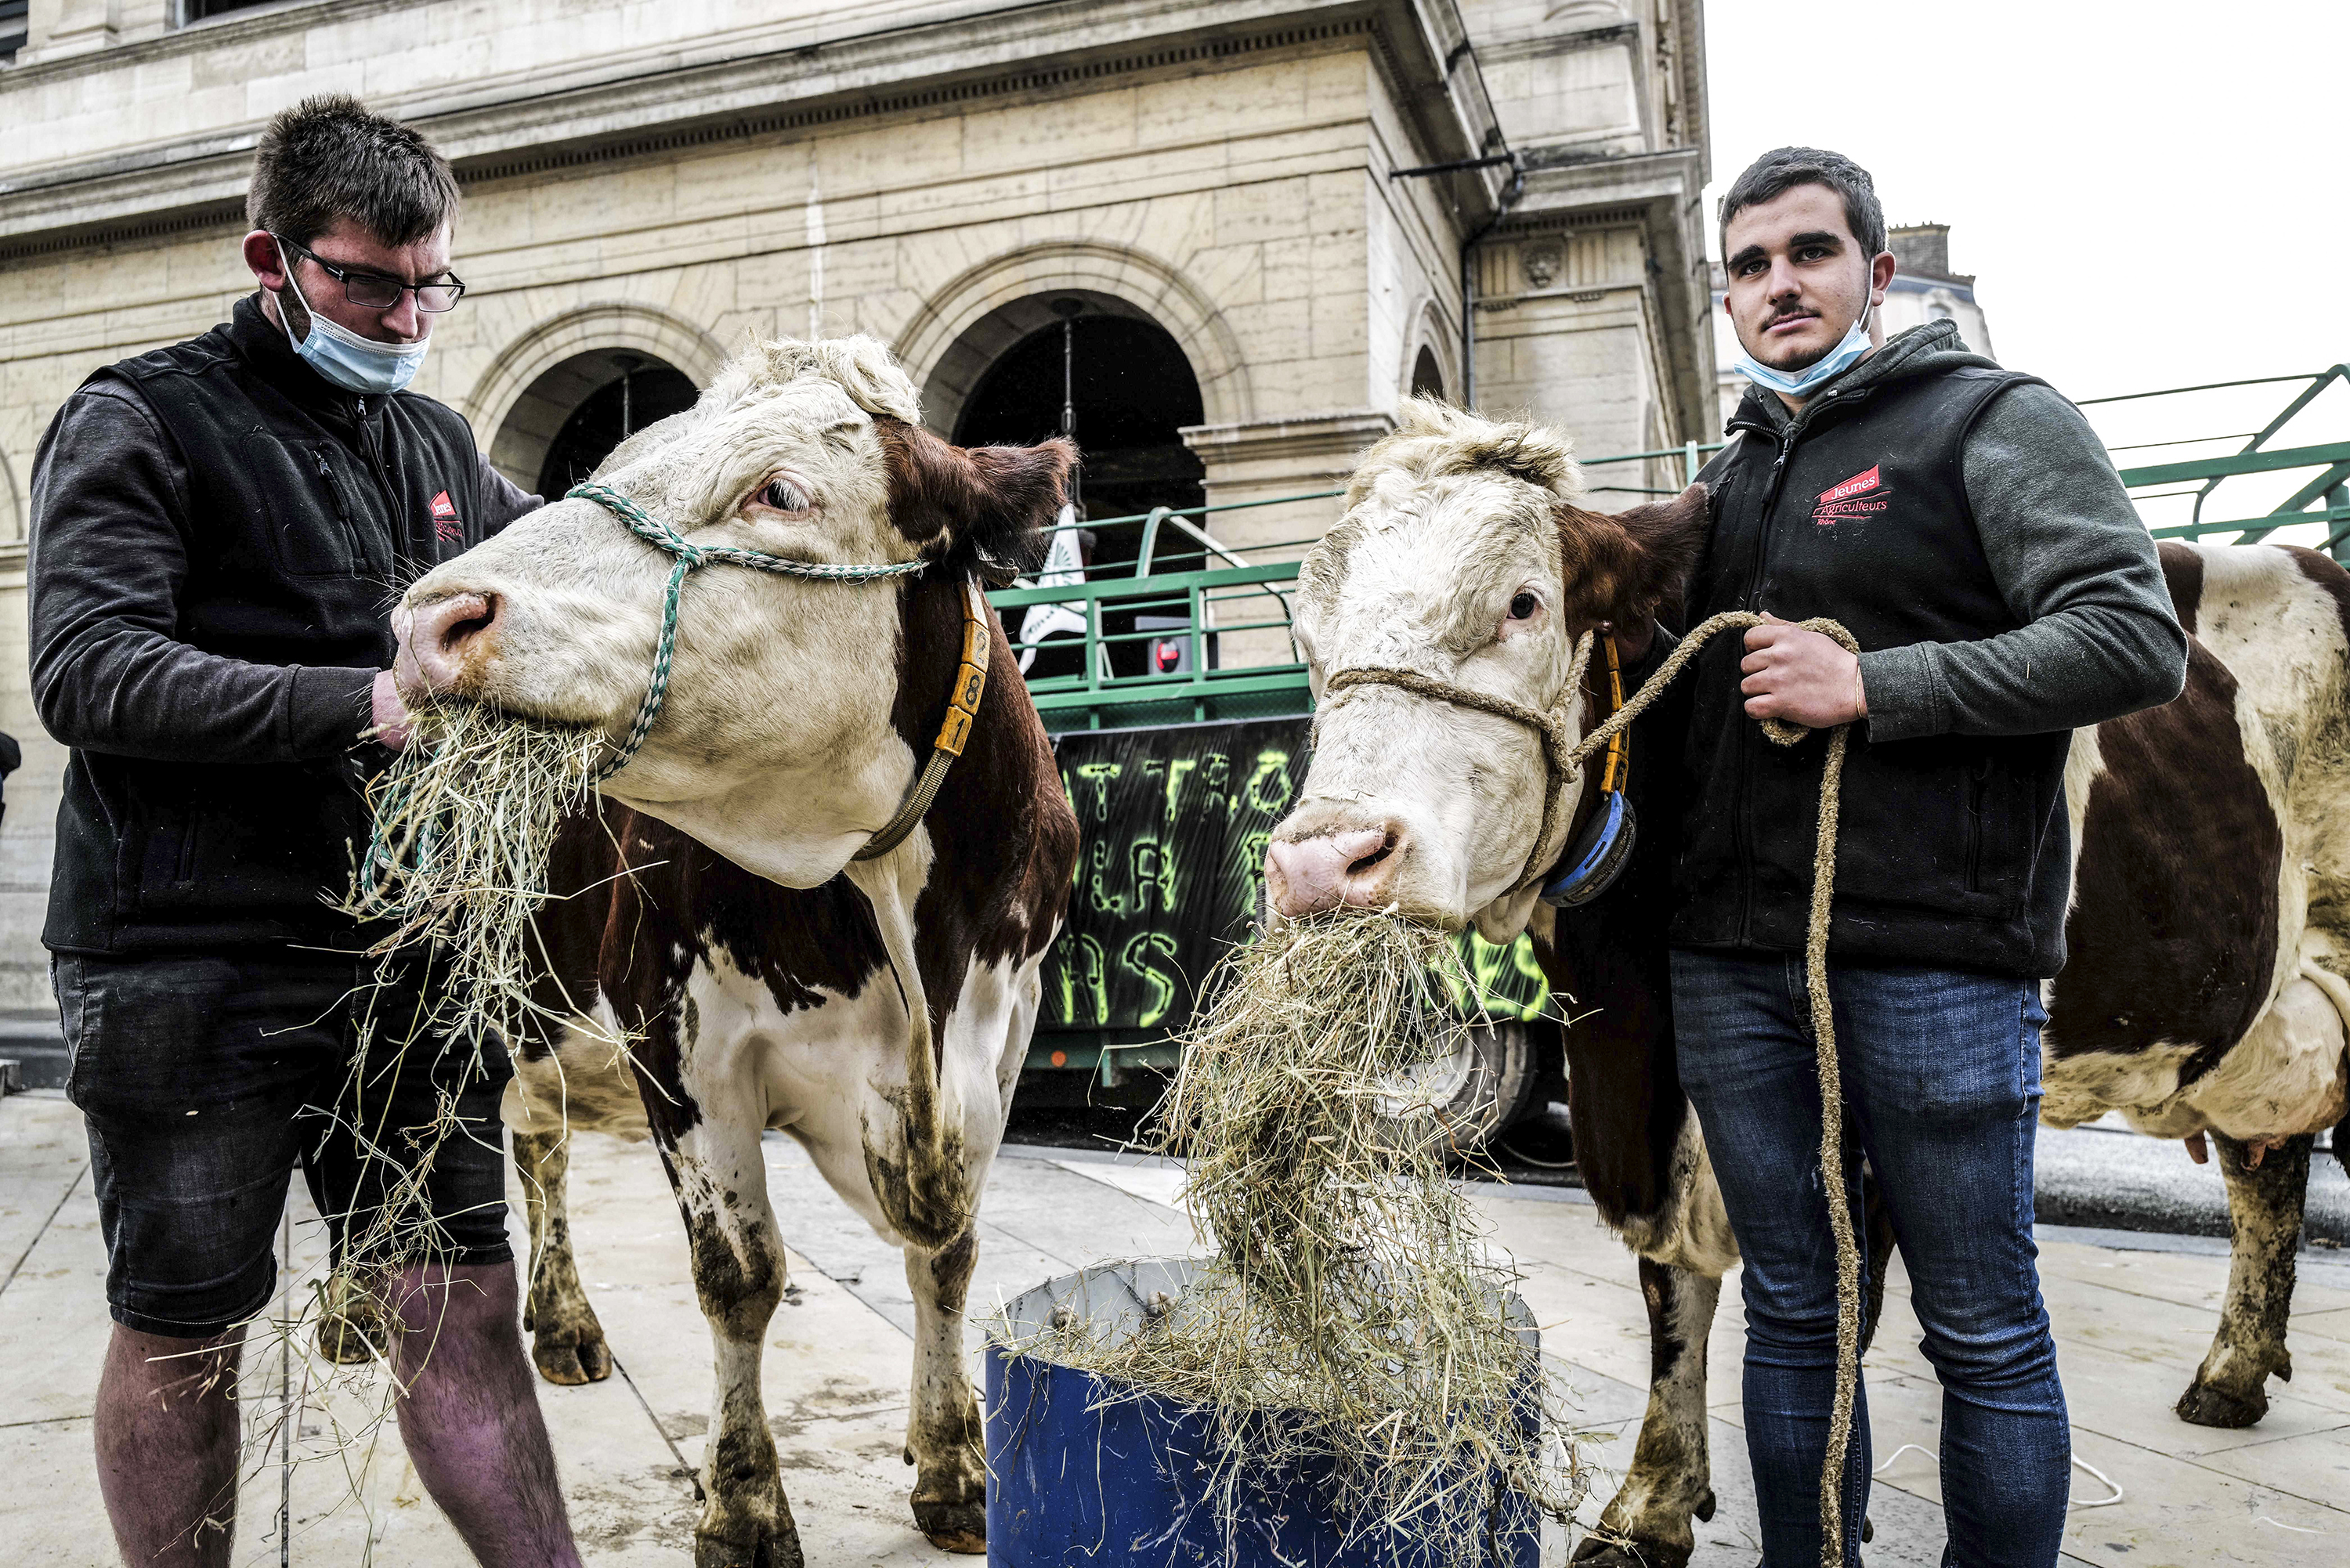 Two farmers hold the halter ropes on two cows eating hay on a city street.